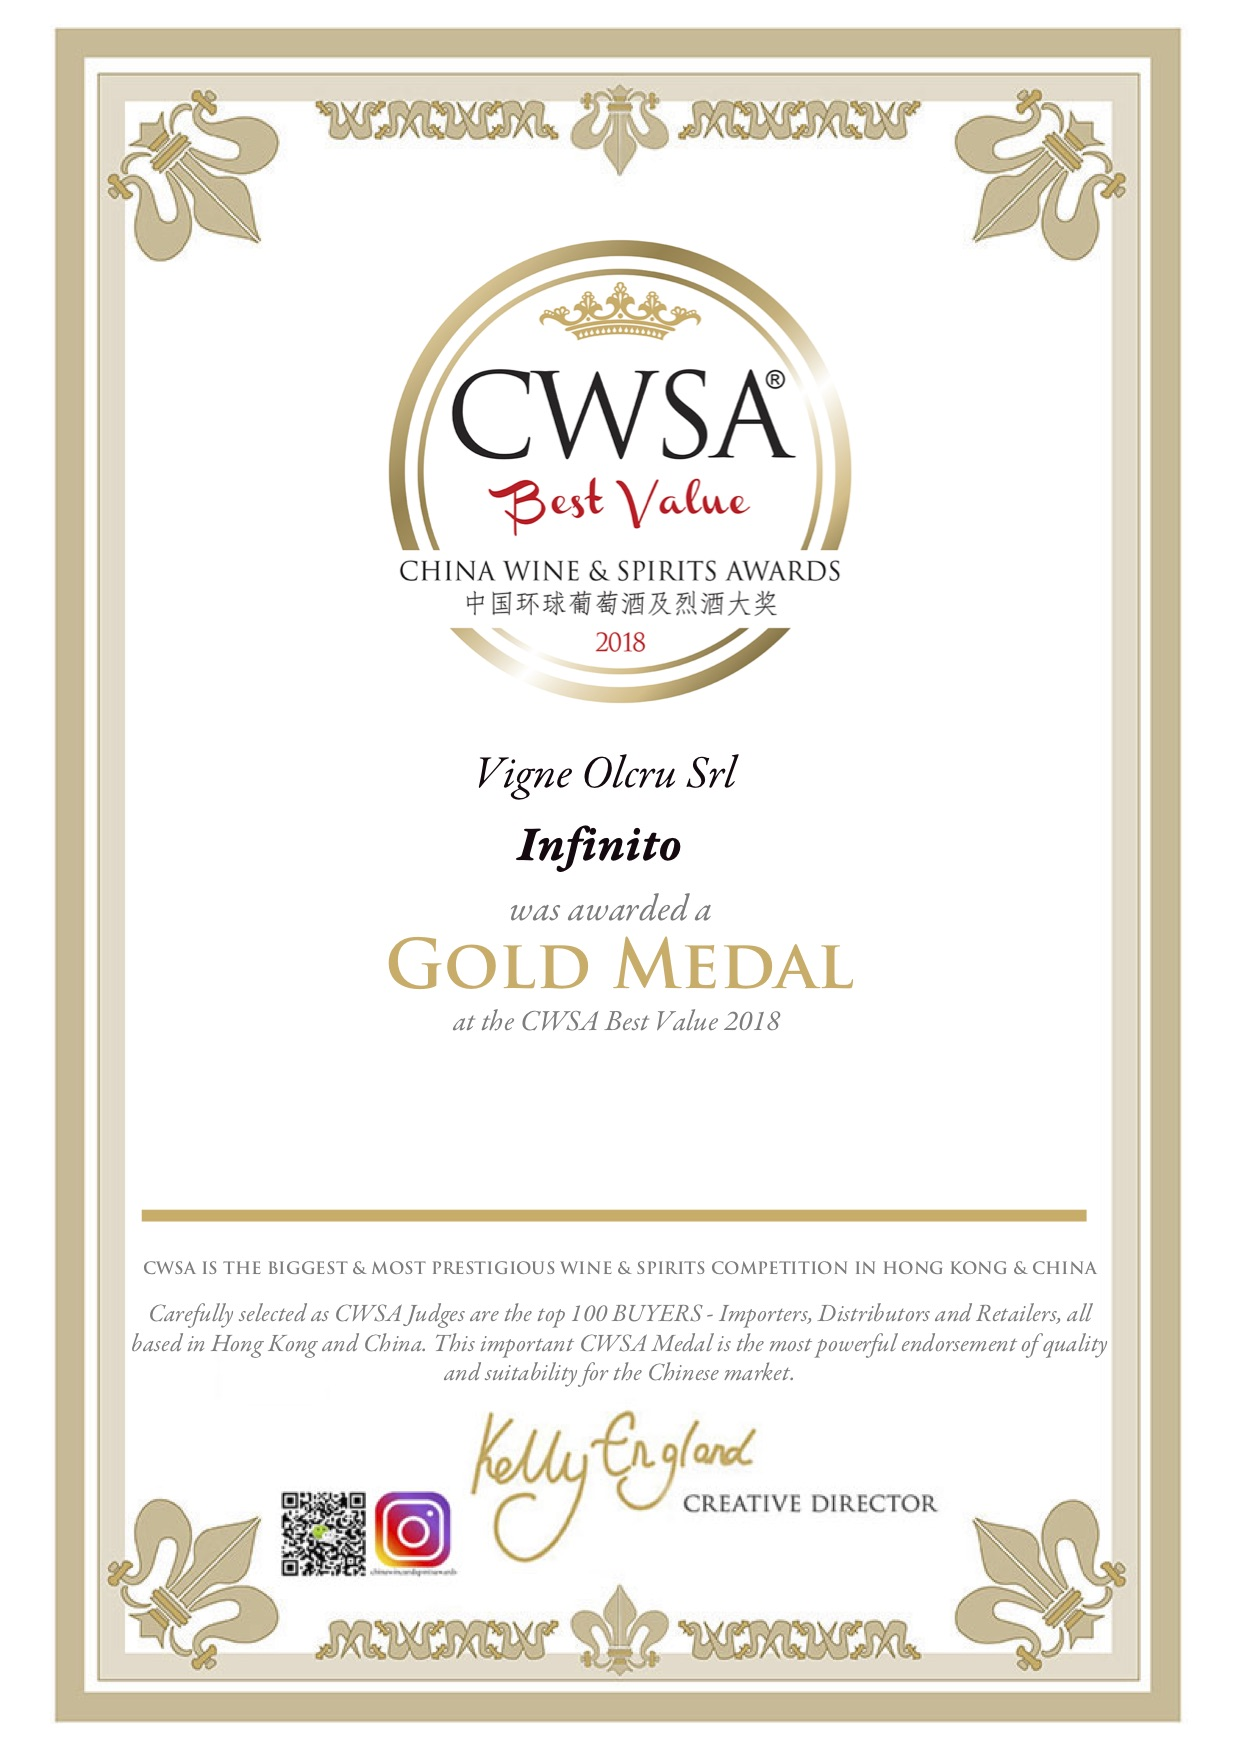 CWSA Best Value 2018 – INFINITO